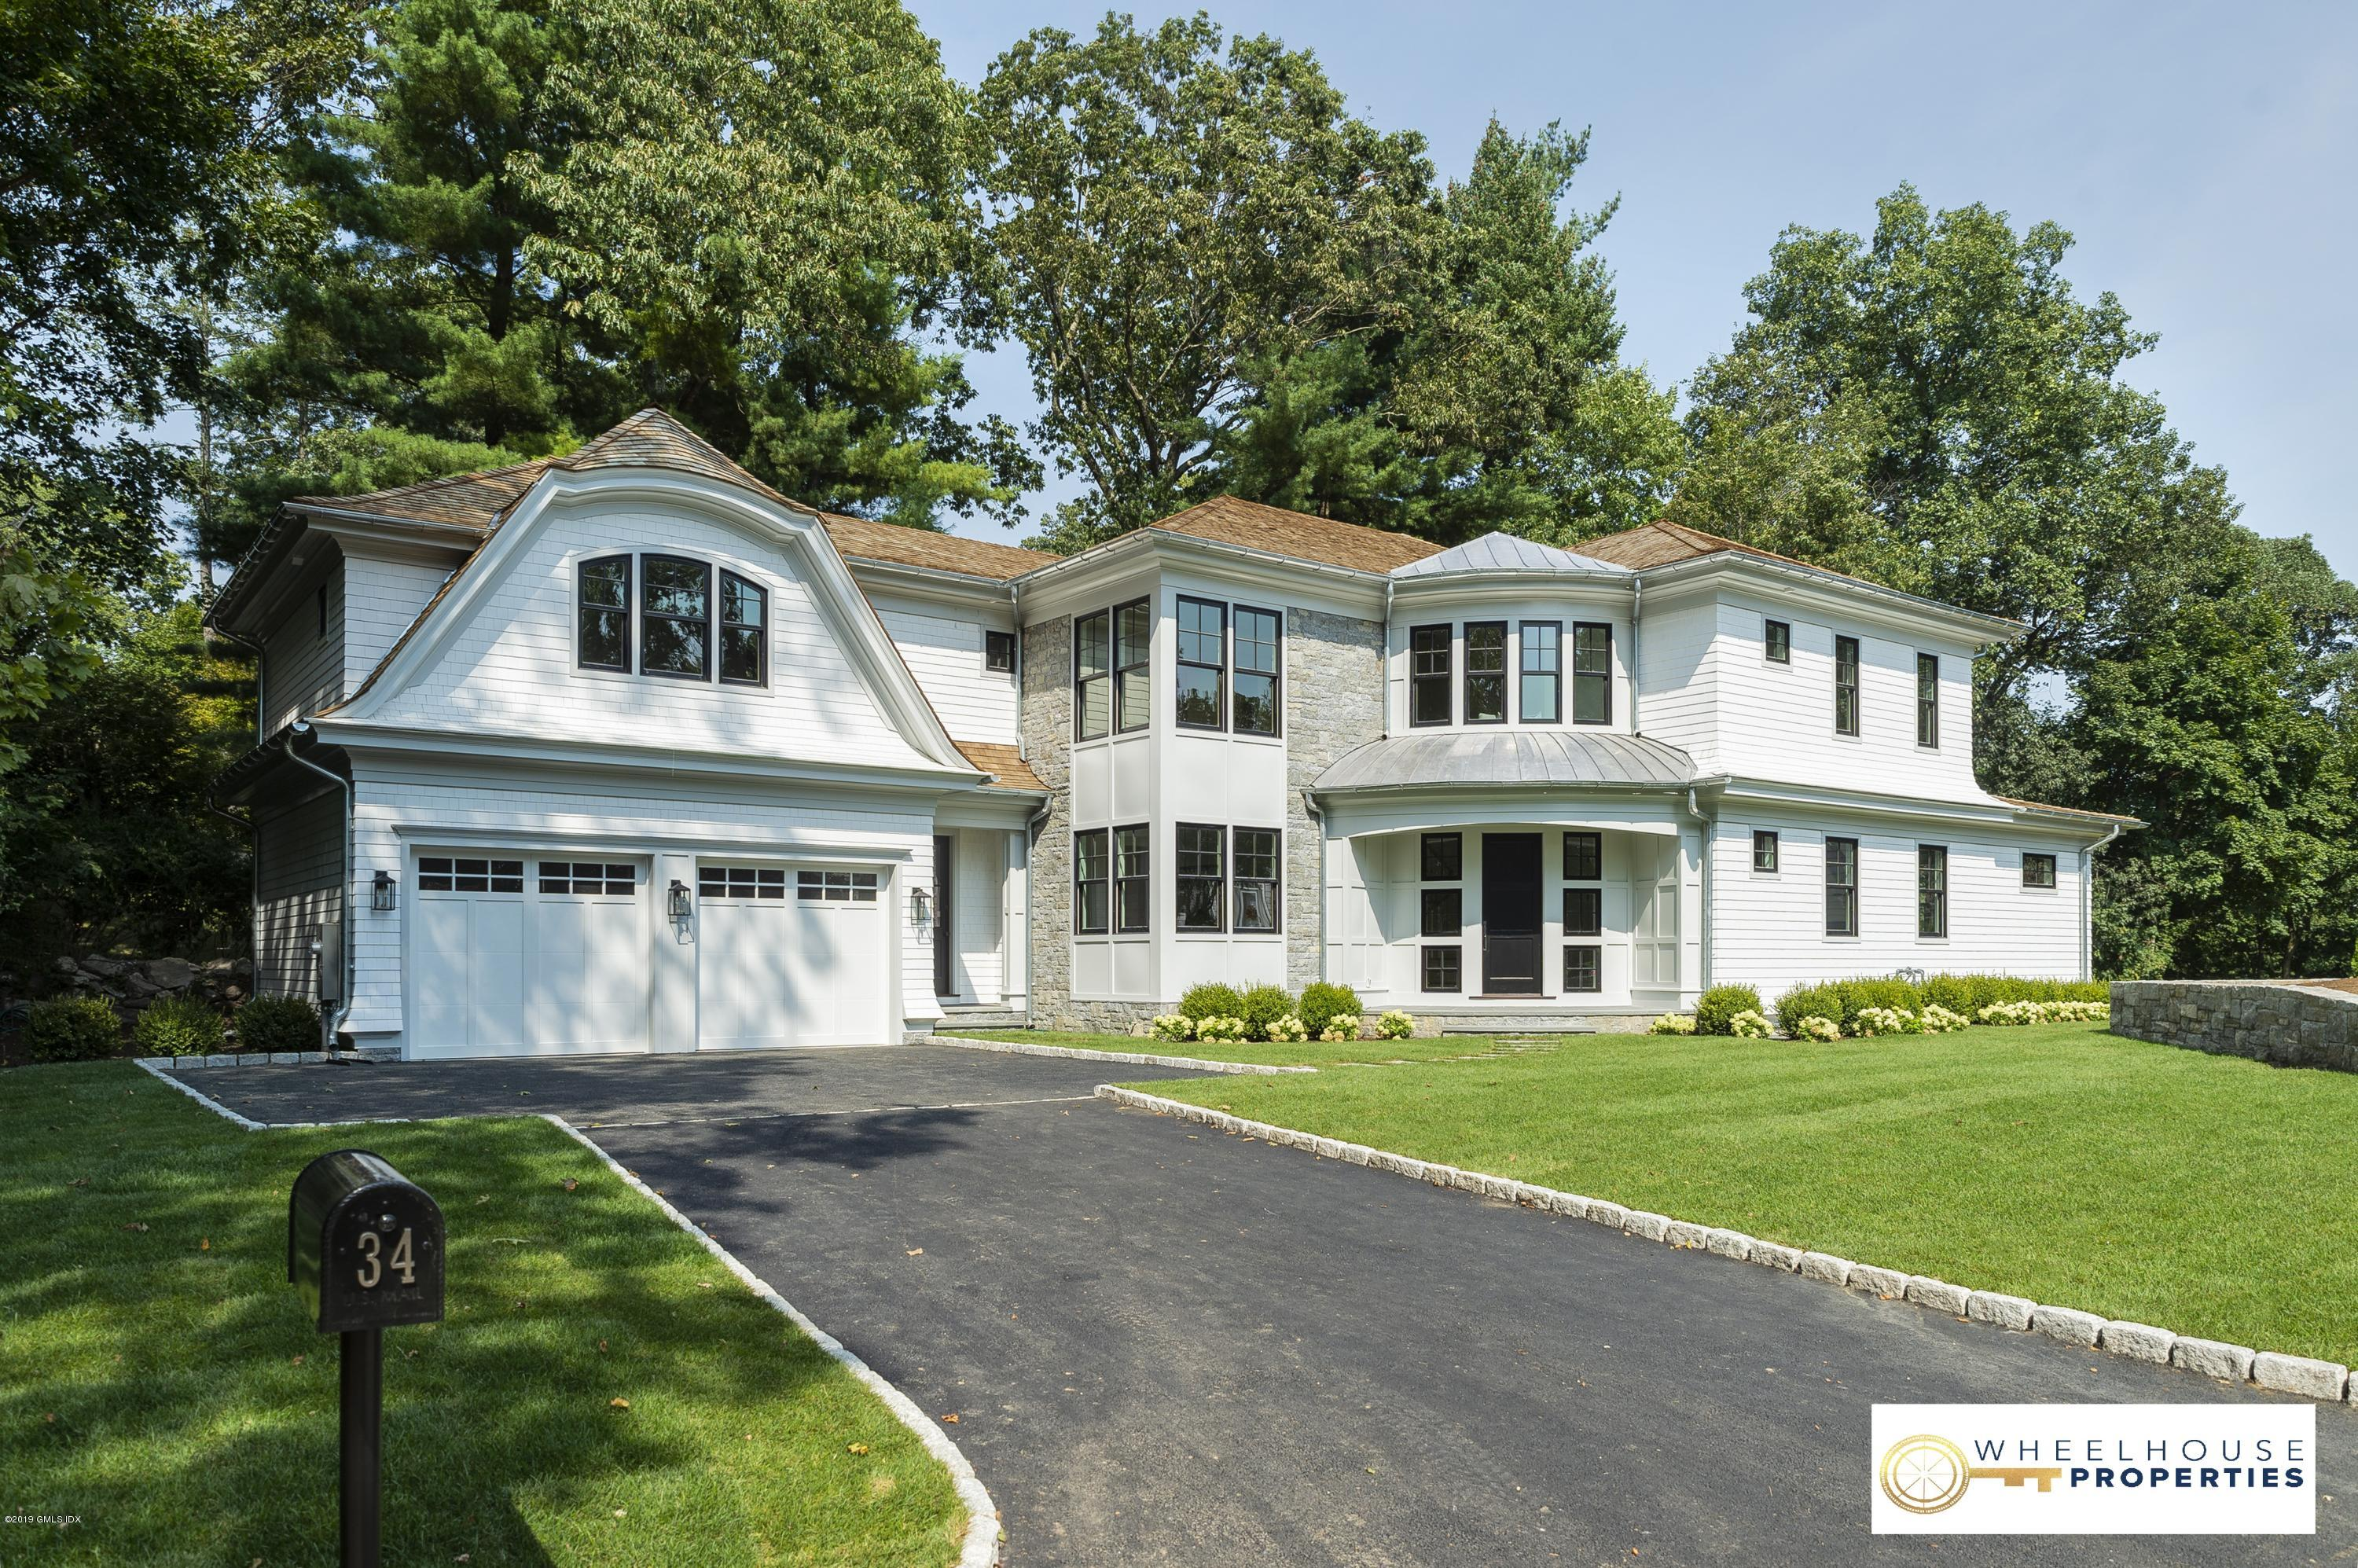 34 Annjim Drive,Greenwich,Connecticut 06830,6 Bedrooms Bedrooms,5 BathroomsBathrooms,Single family,Annjim,107843